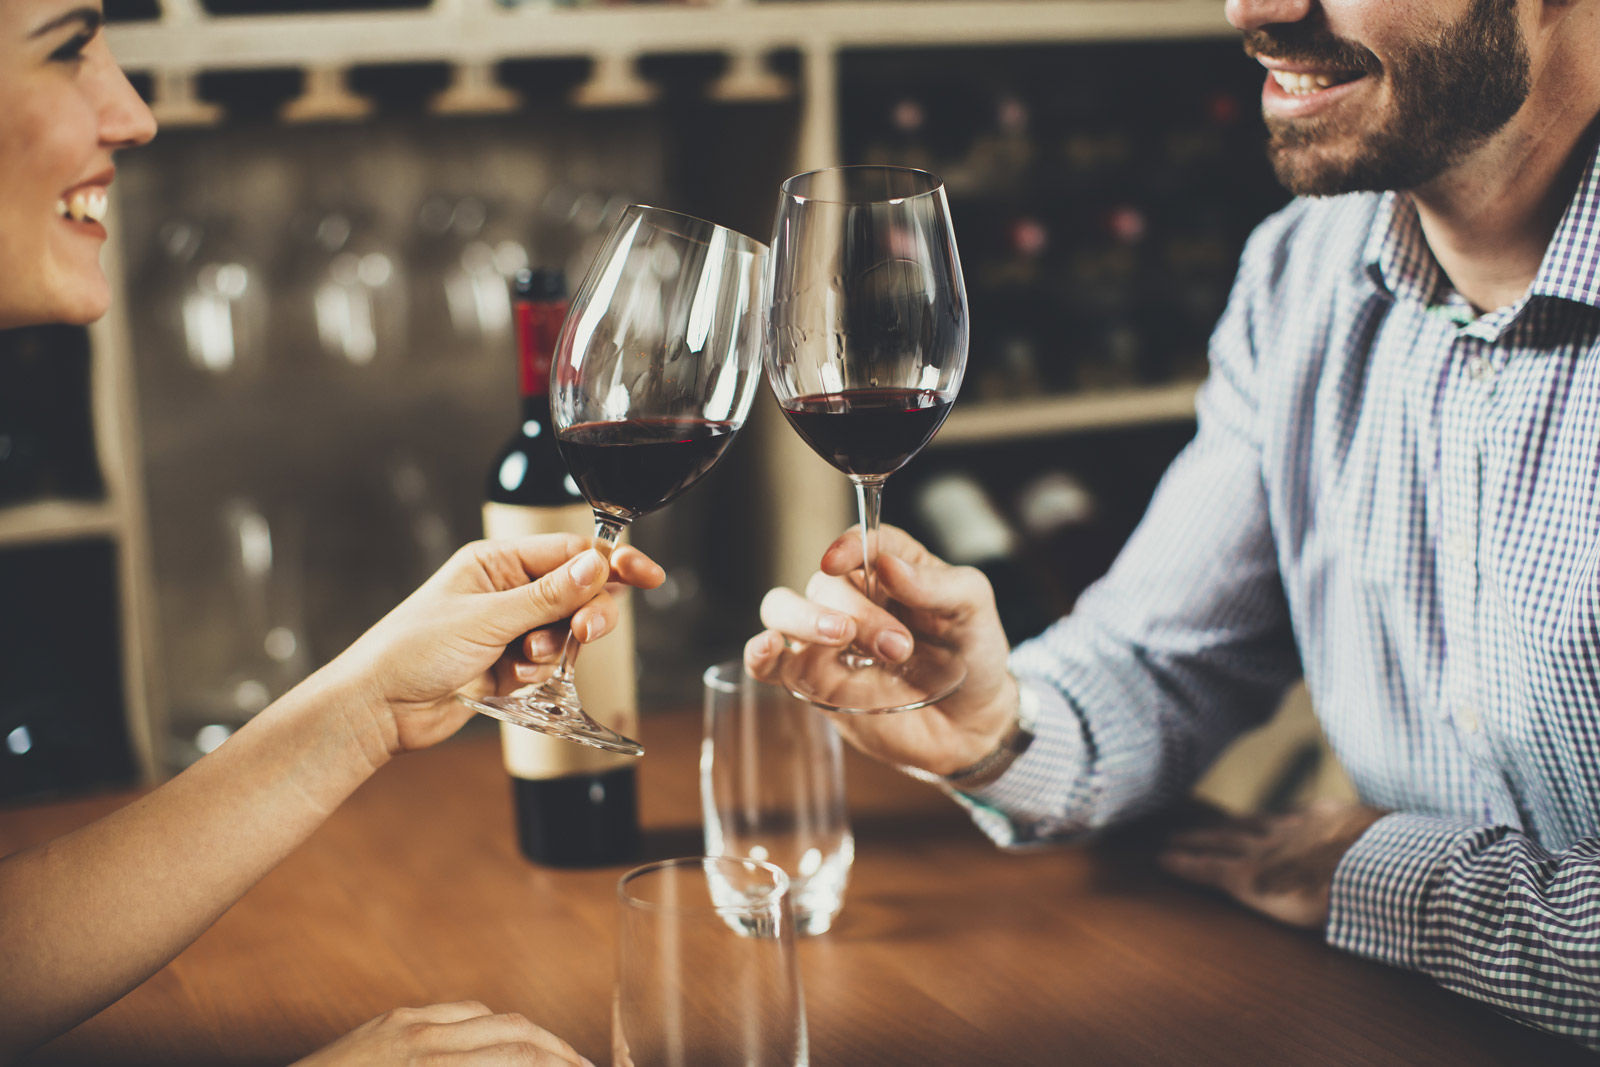 Get away for some time together with our Kelowna hotel romance or Okanagan wine tour packages.